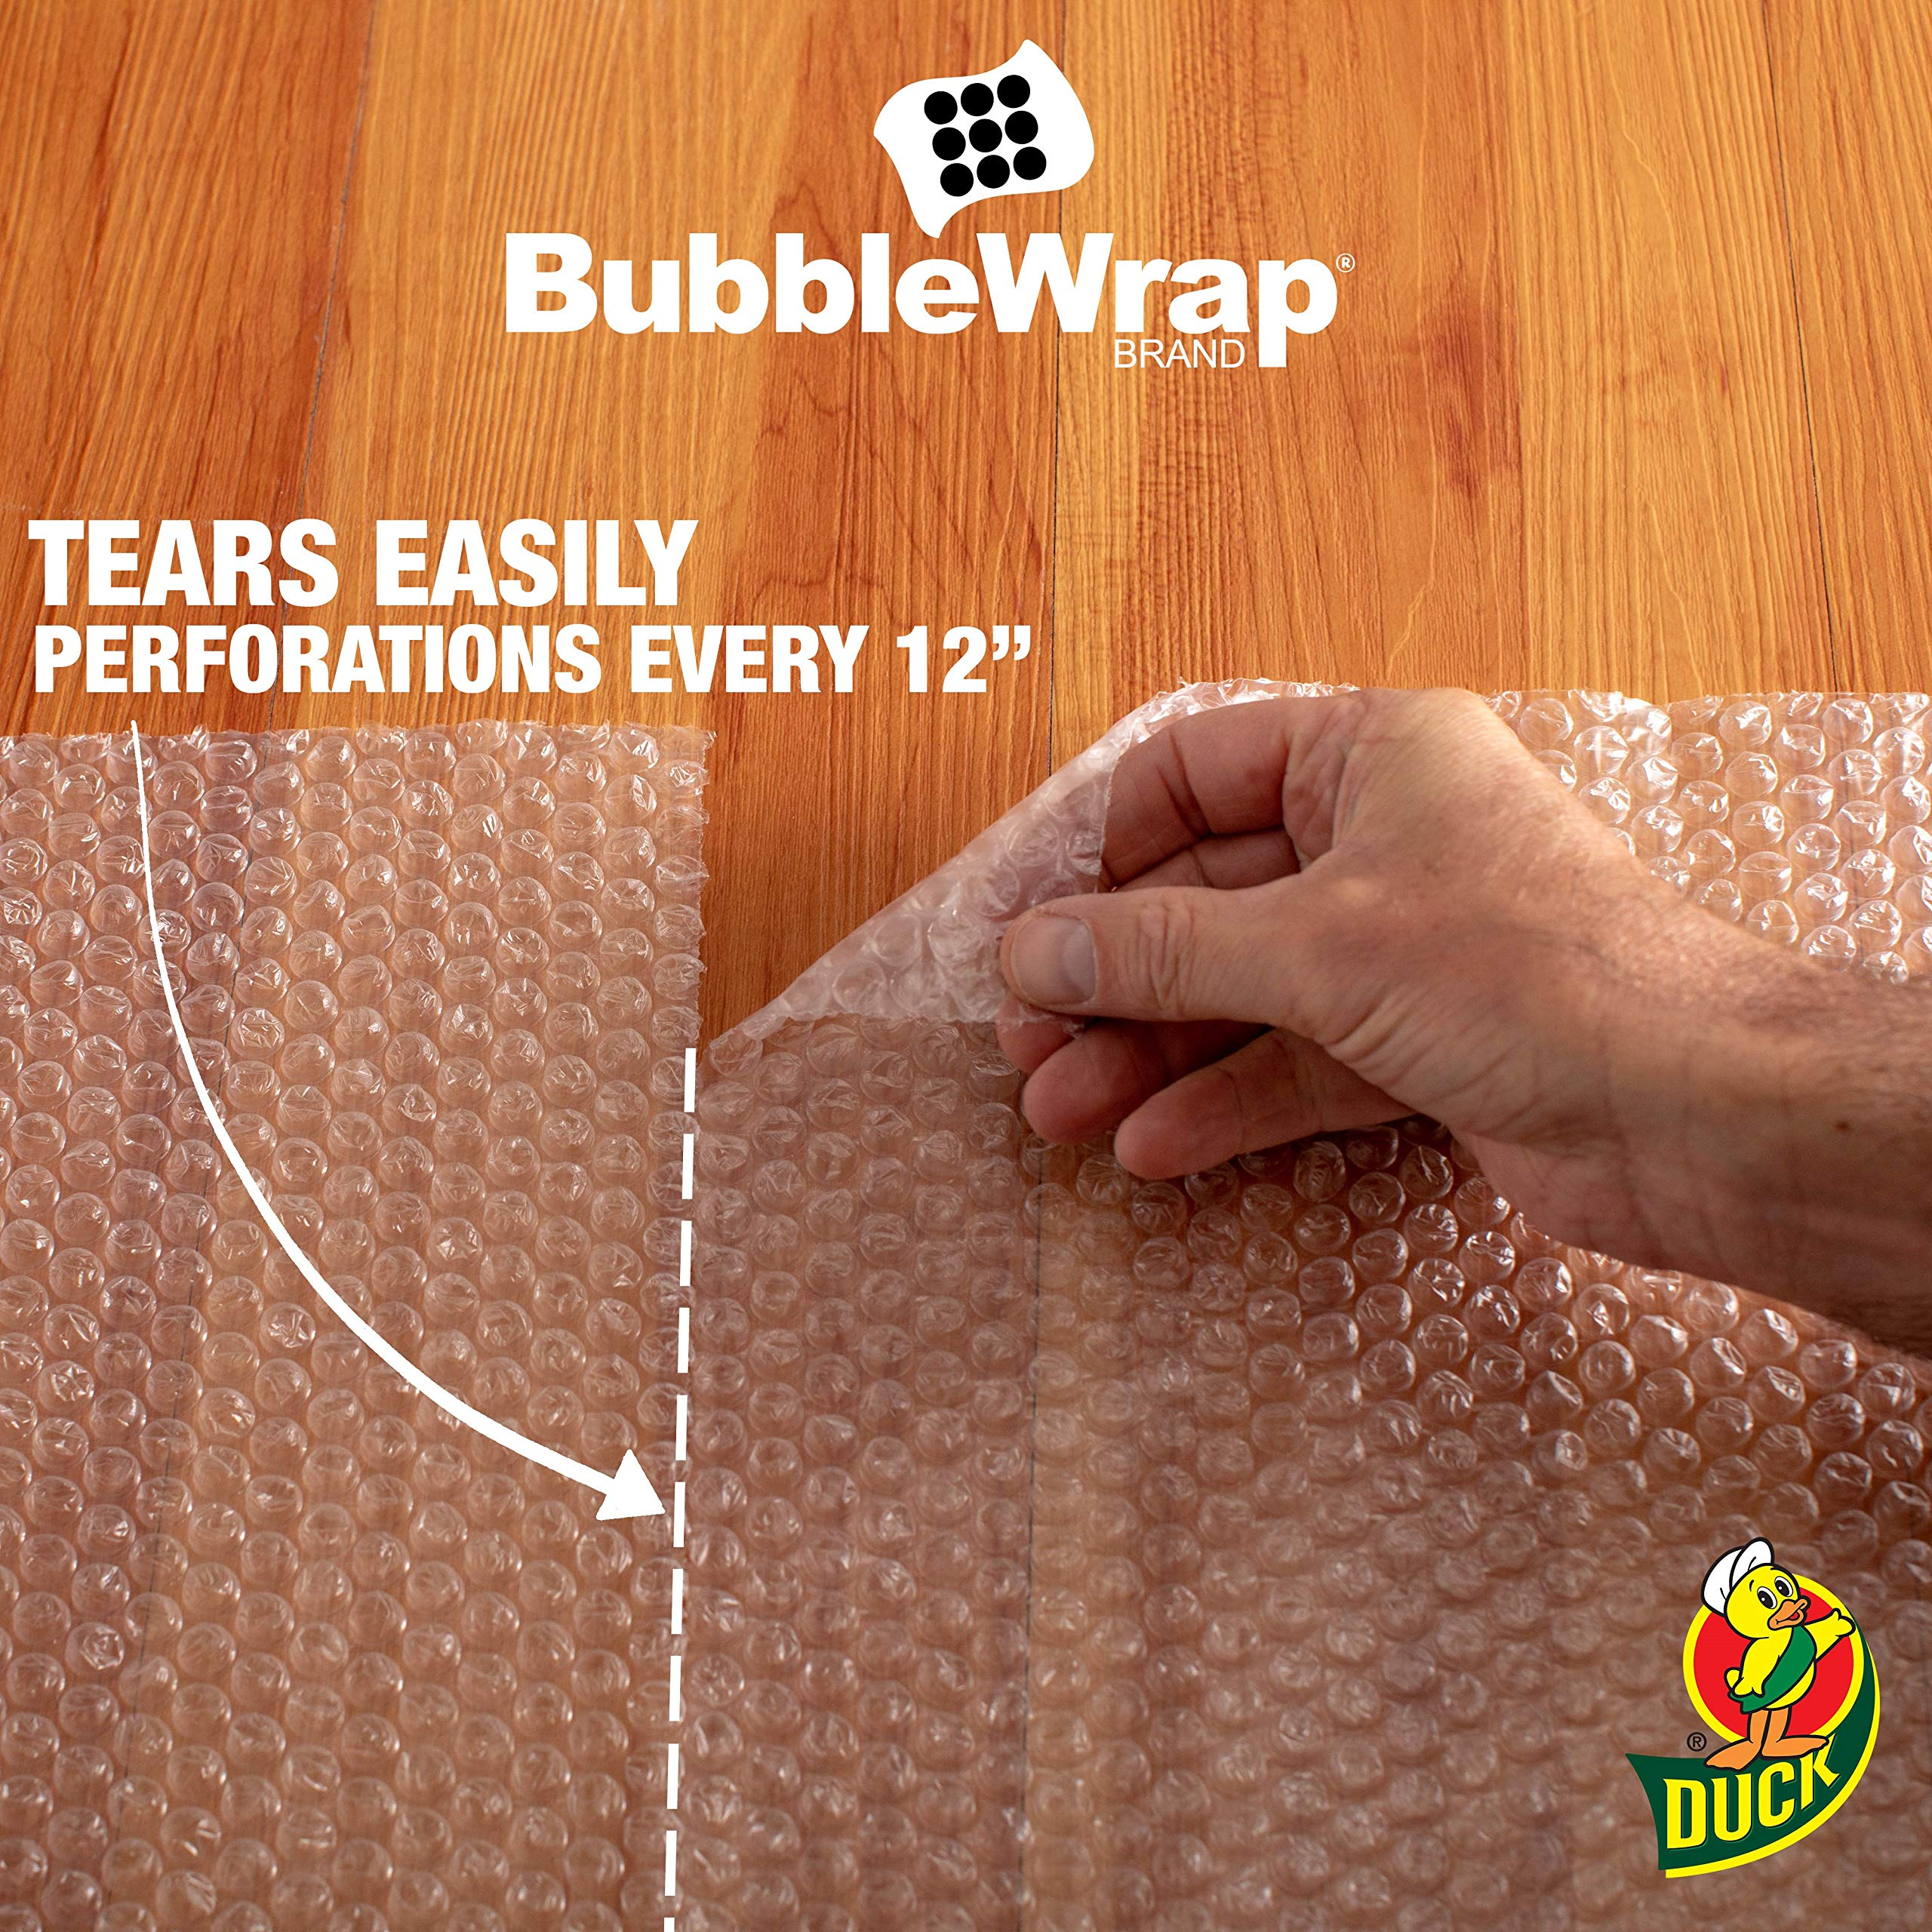 Duck Brand Bubble Wrap Roll, 3/16'' Original Bubble Cushioning, 12'' x 150', Perforated Every 12'' (284054) by Duck (Image #3)